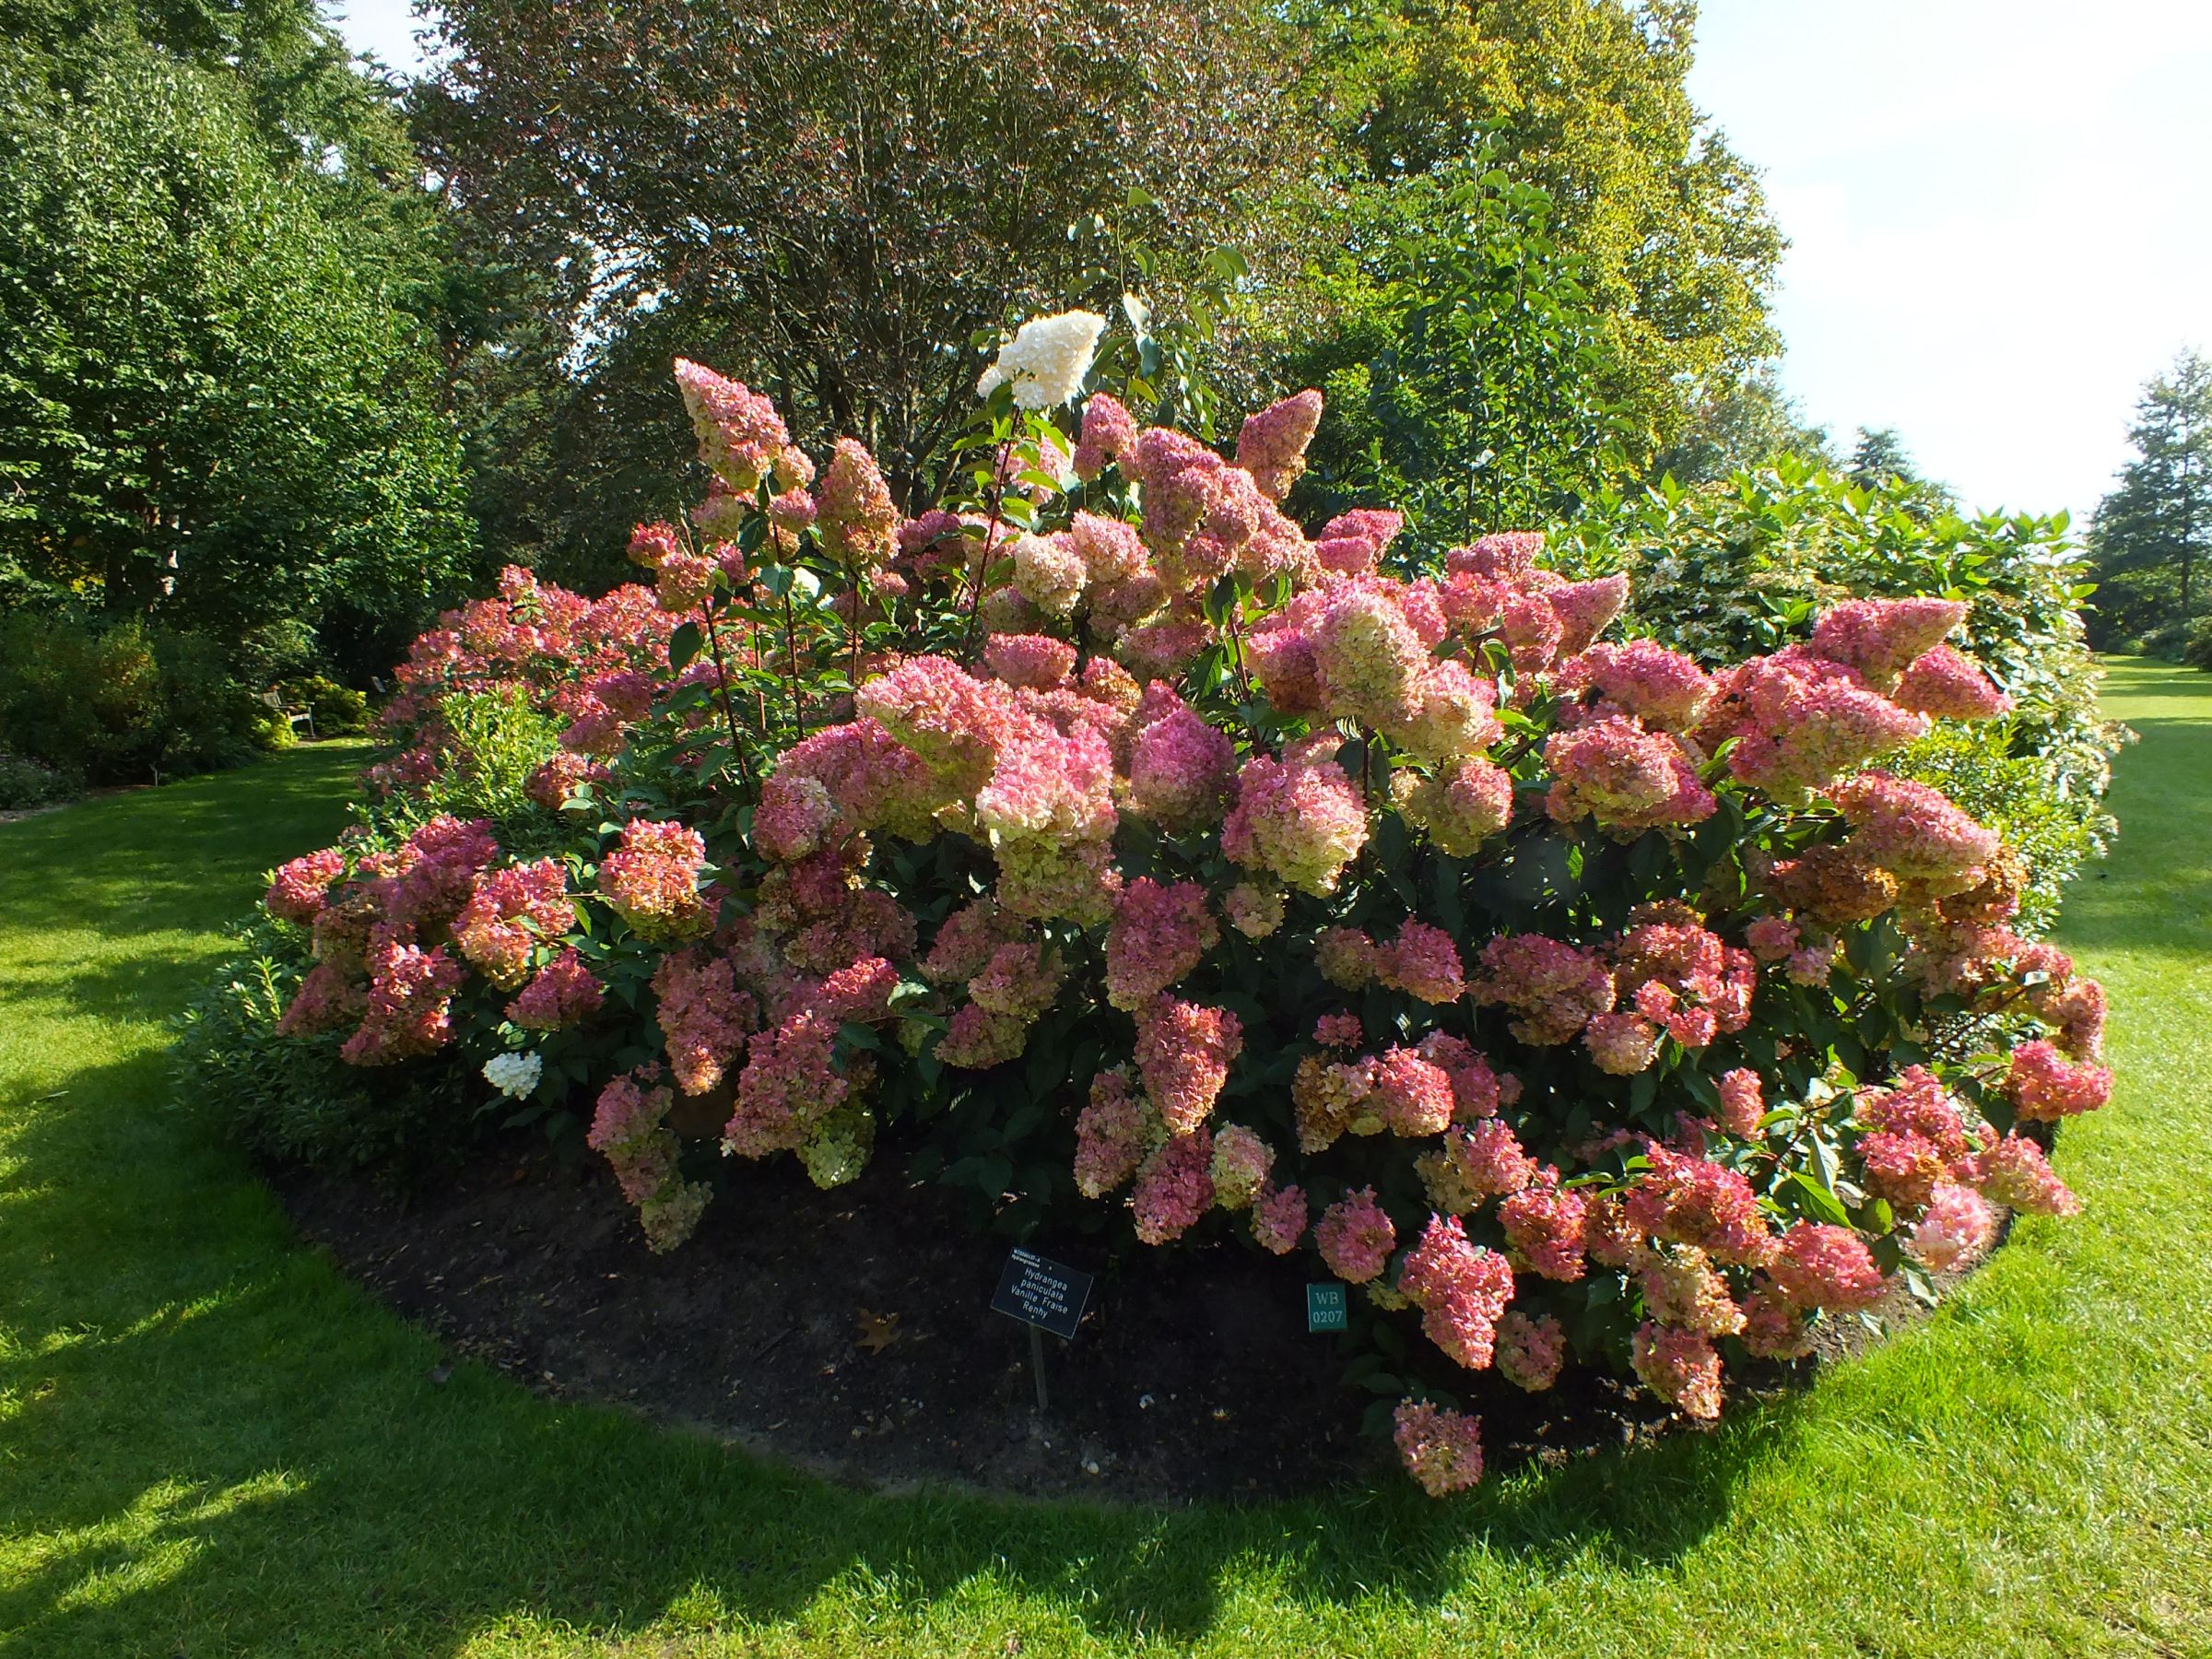 hydrangea paniculata vanille fraise hydrangea paniculata hydrangea hydrangea paniculata. Black Bedroom Furniture Sets. Home Design Ideas